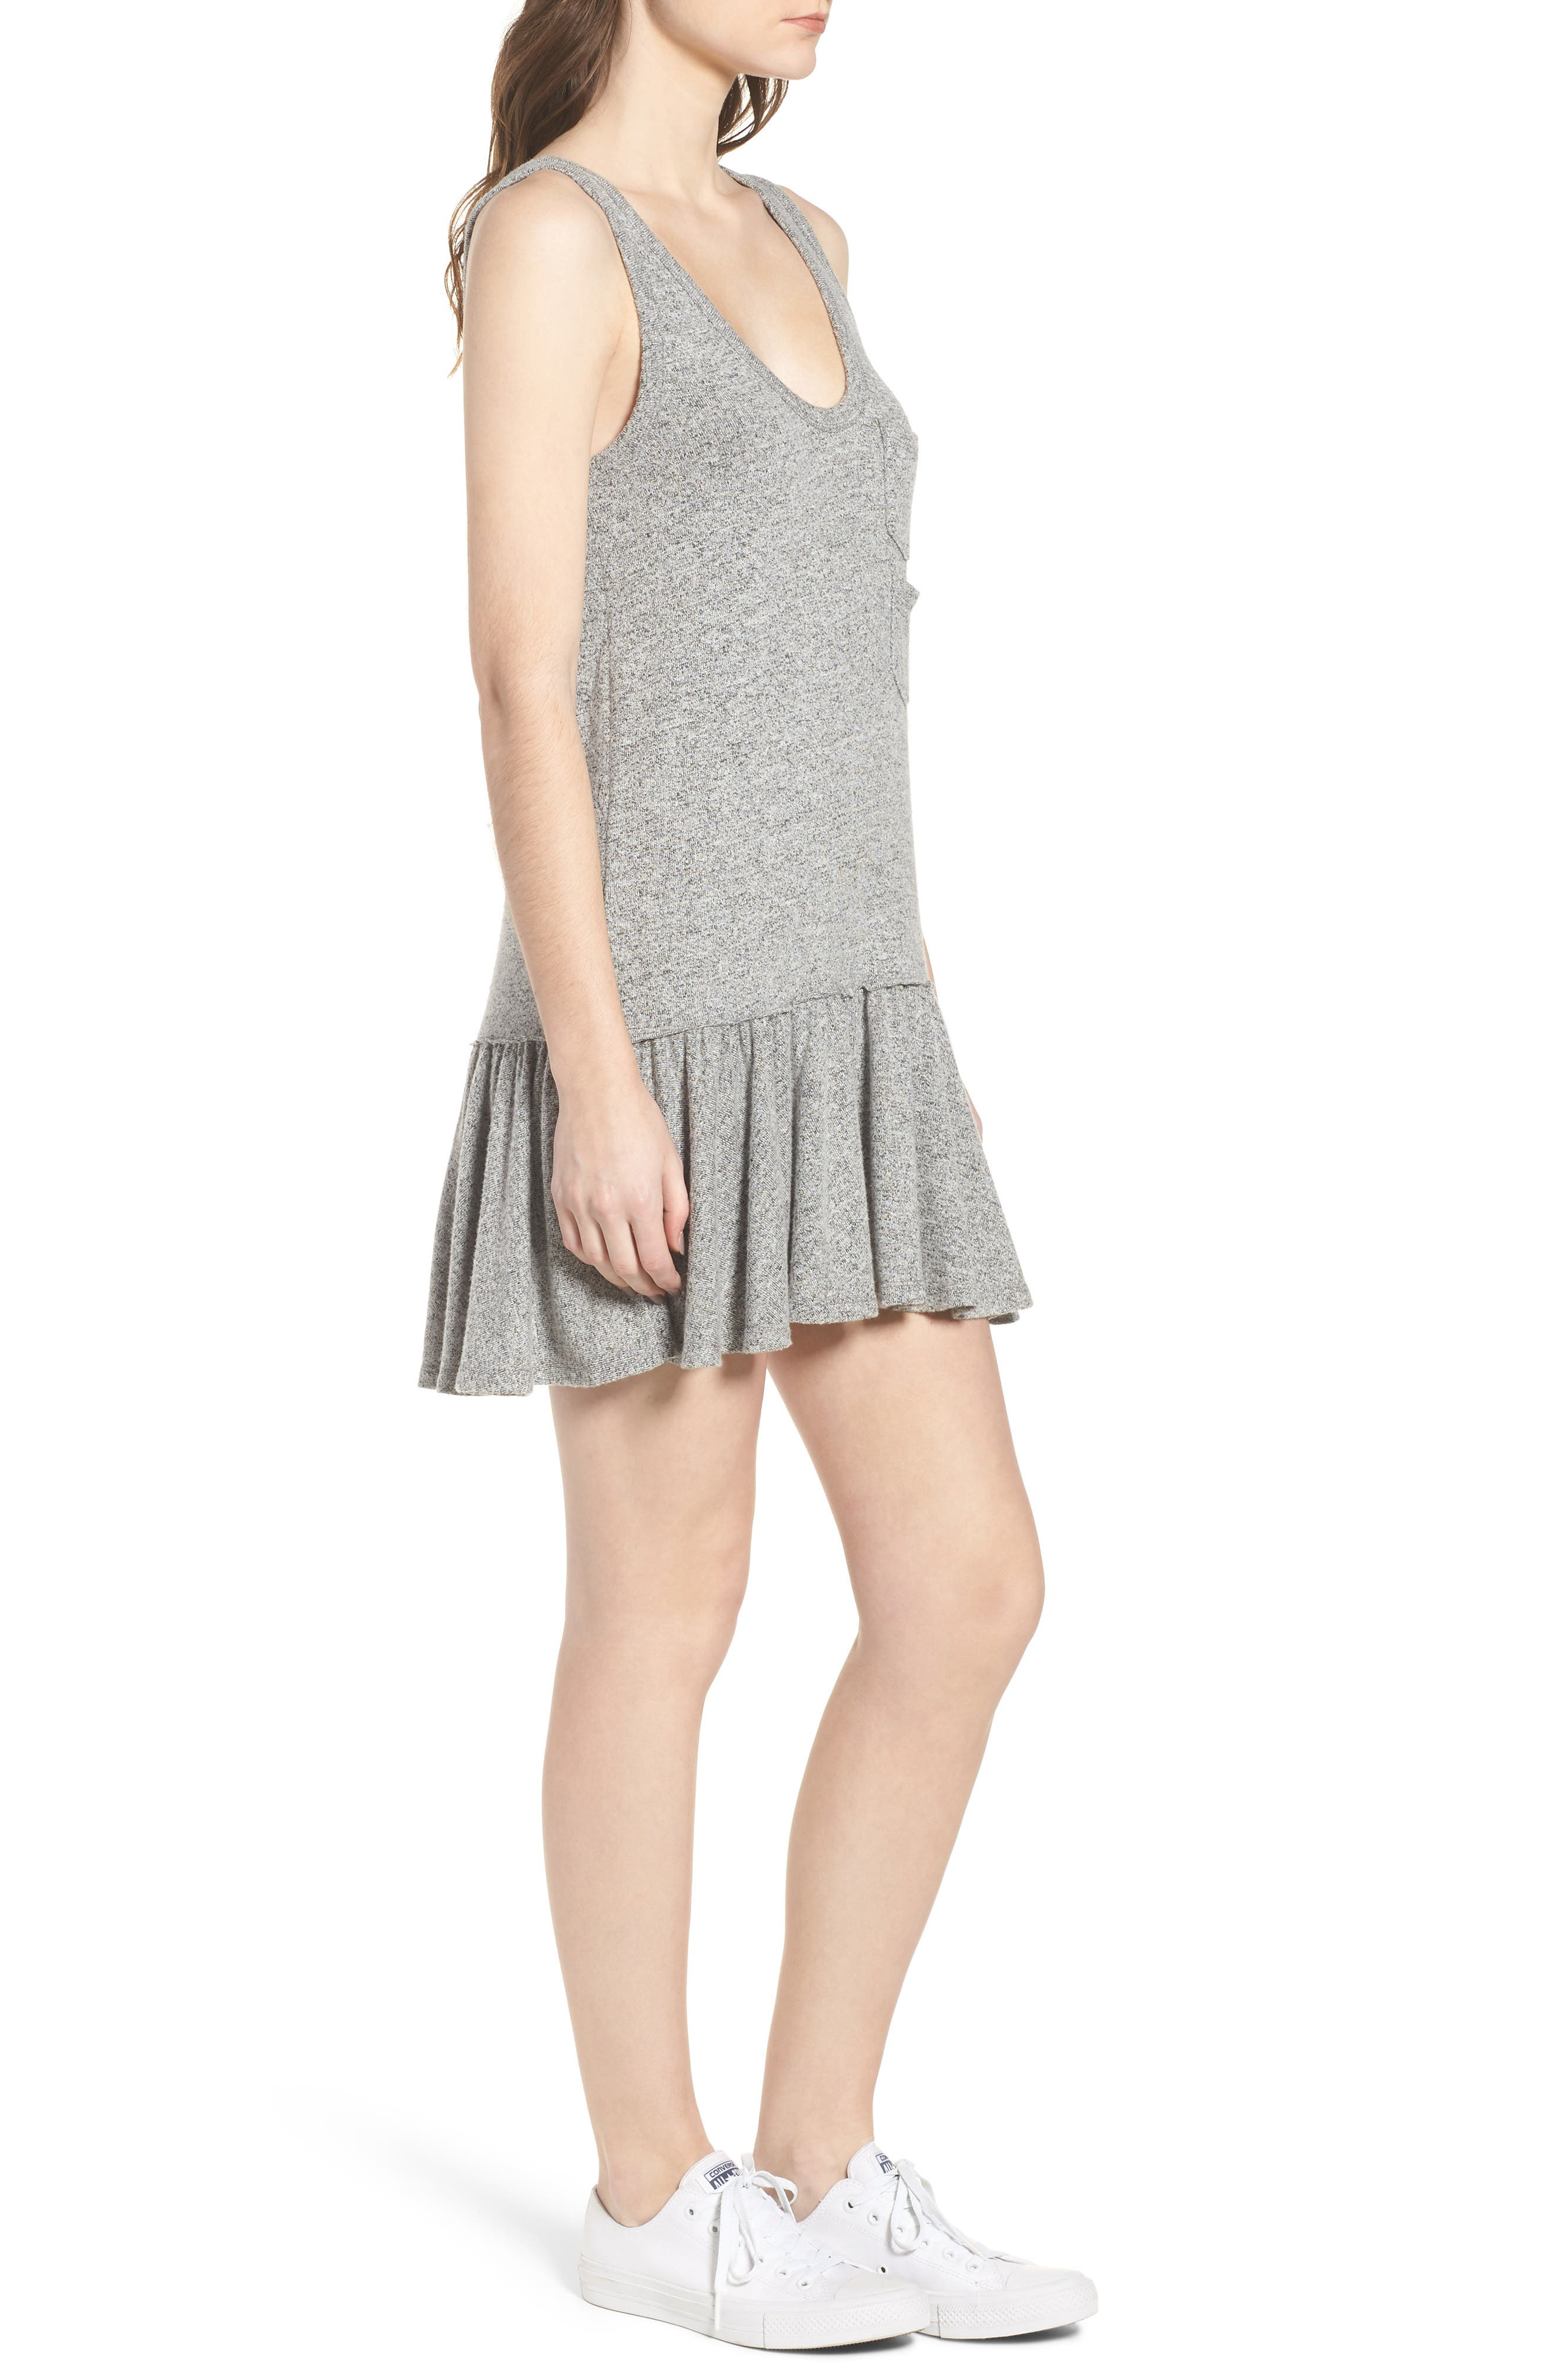 Summer in the City Tank Dress,                             Alternate thumbnail 3, color,                             Heather